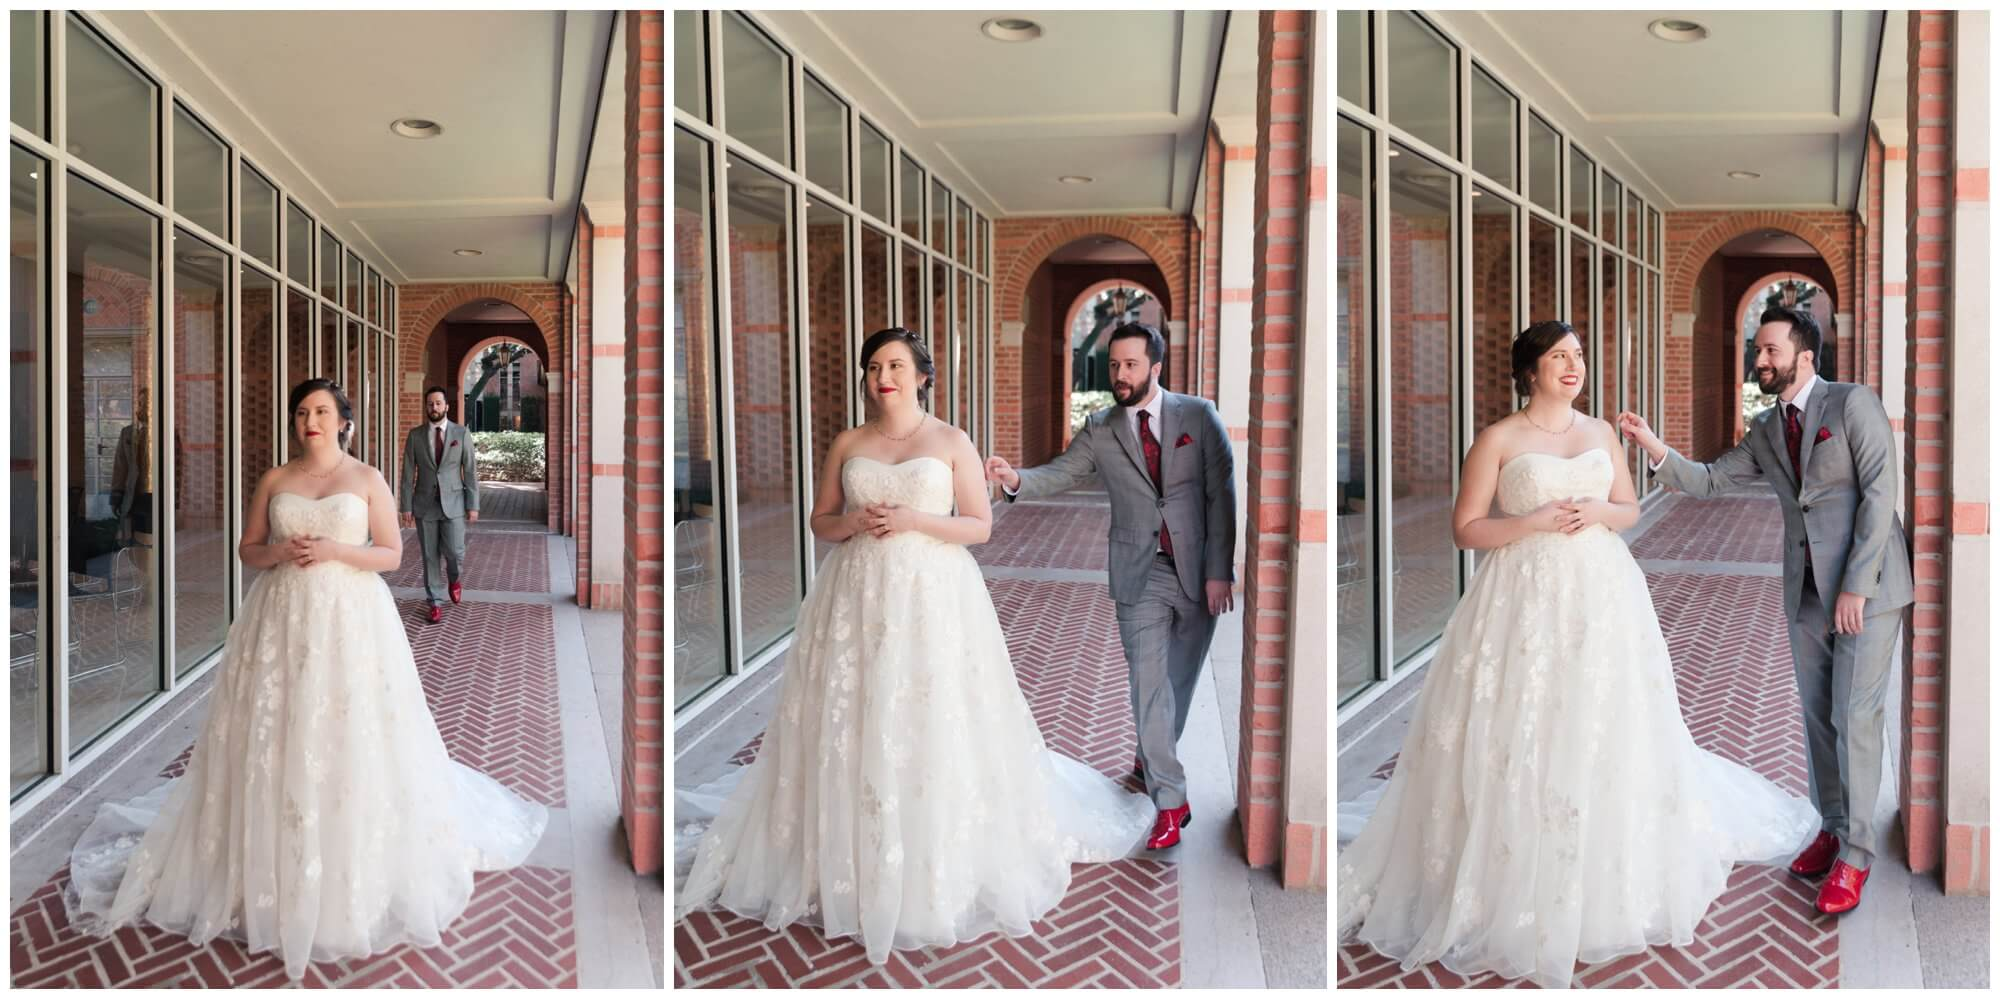 bride and groom first look at Rice University in Houston Texas by Swish and Click Photography